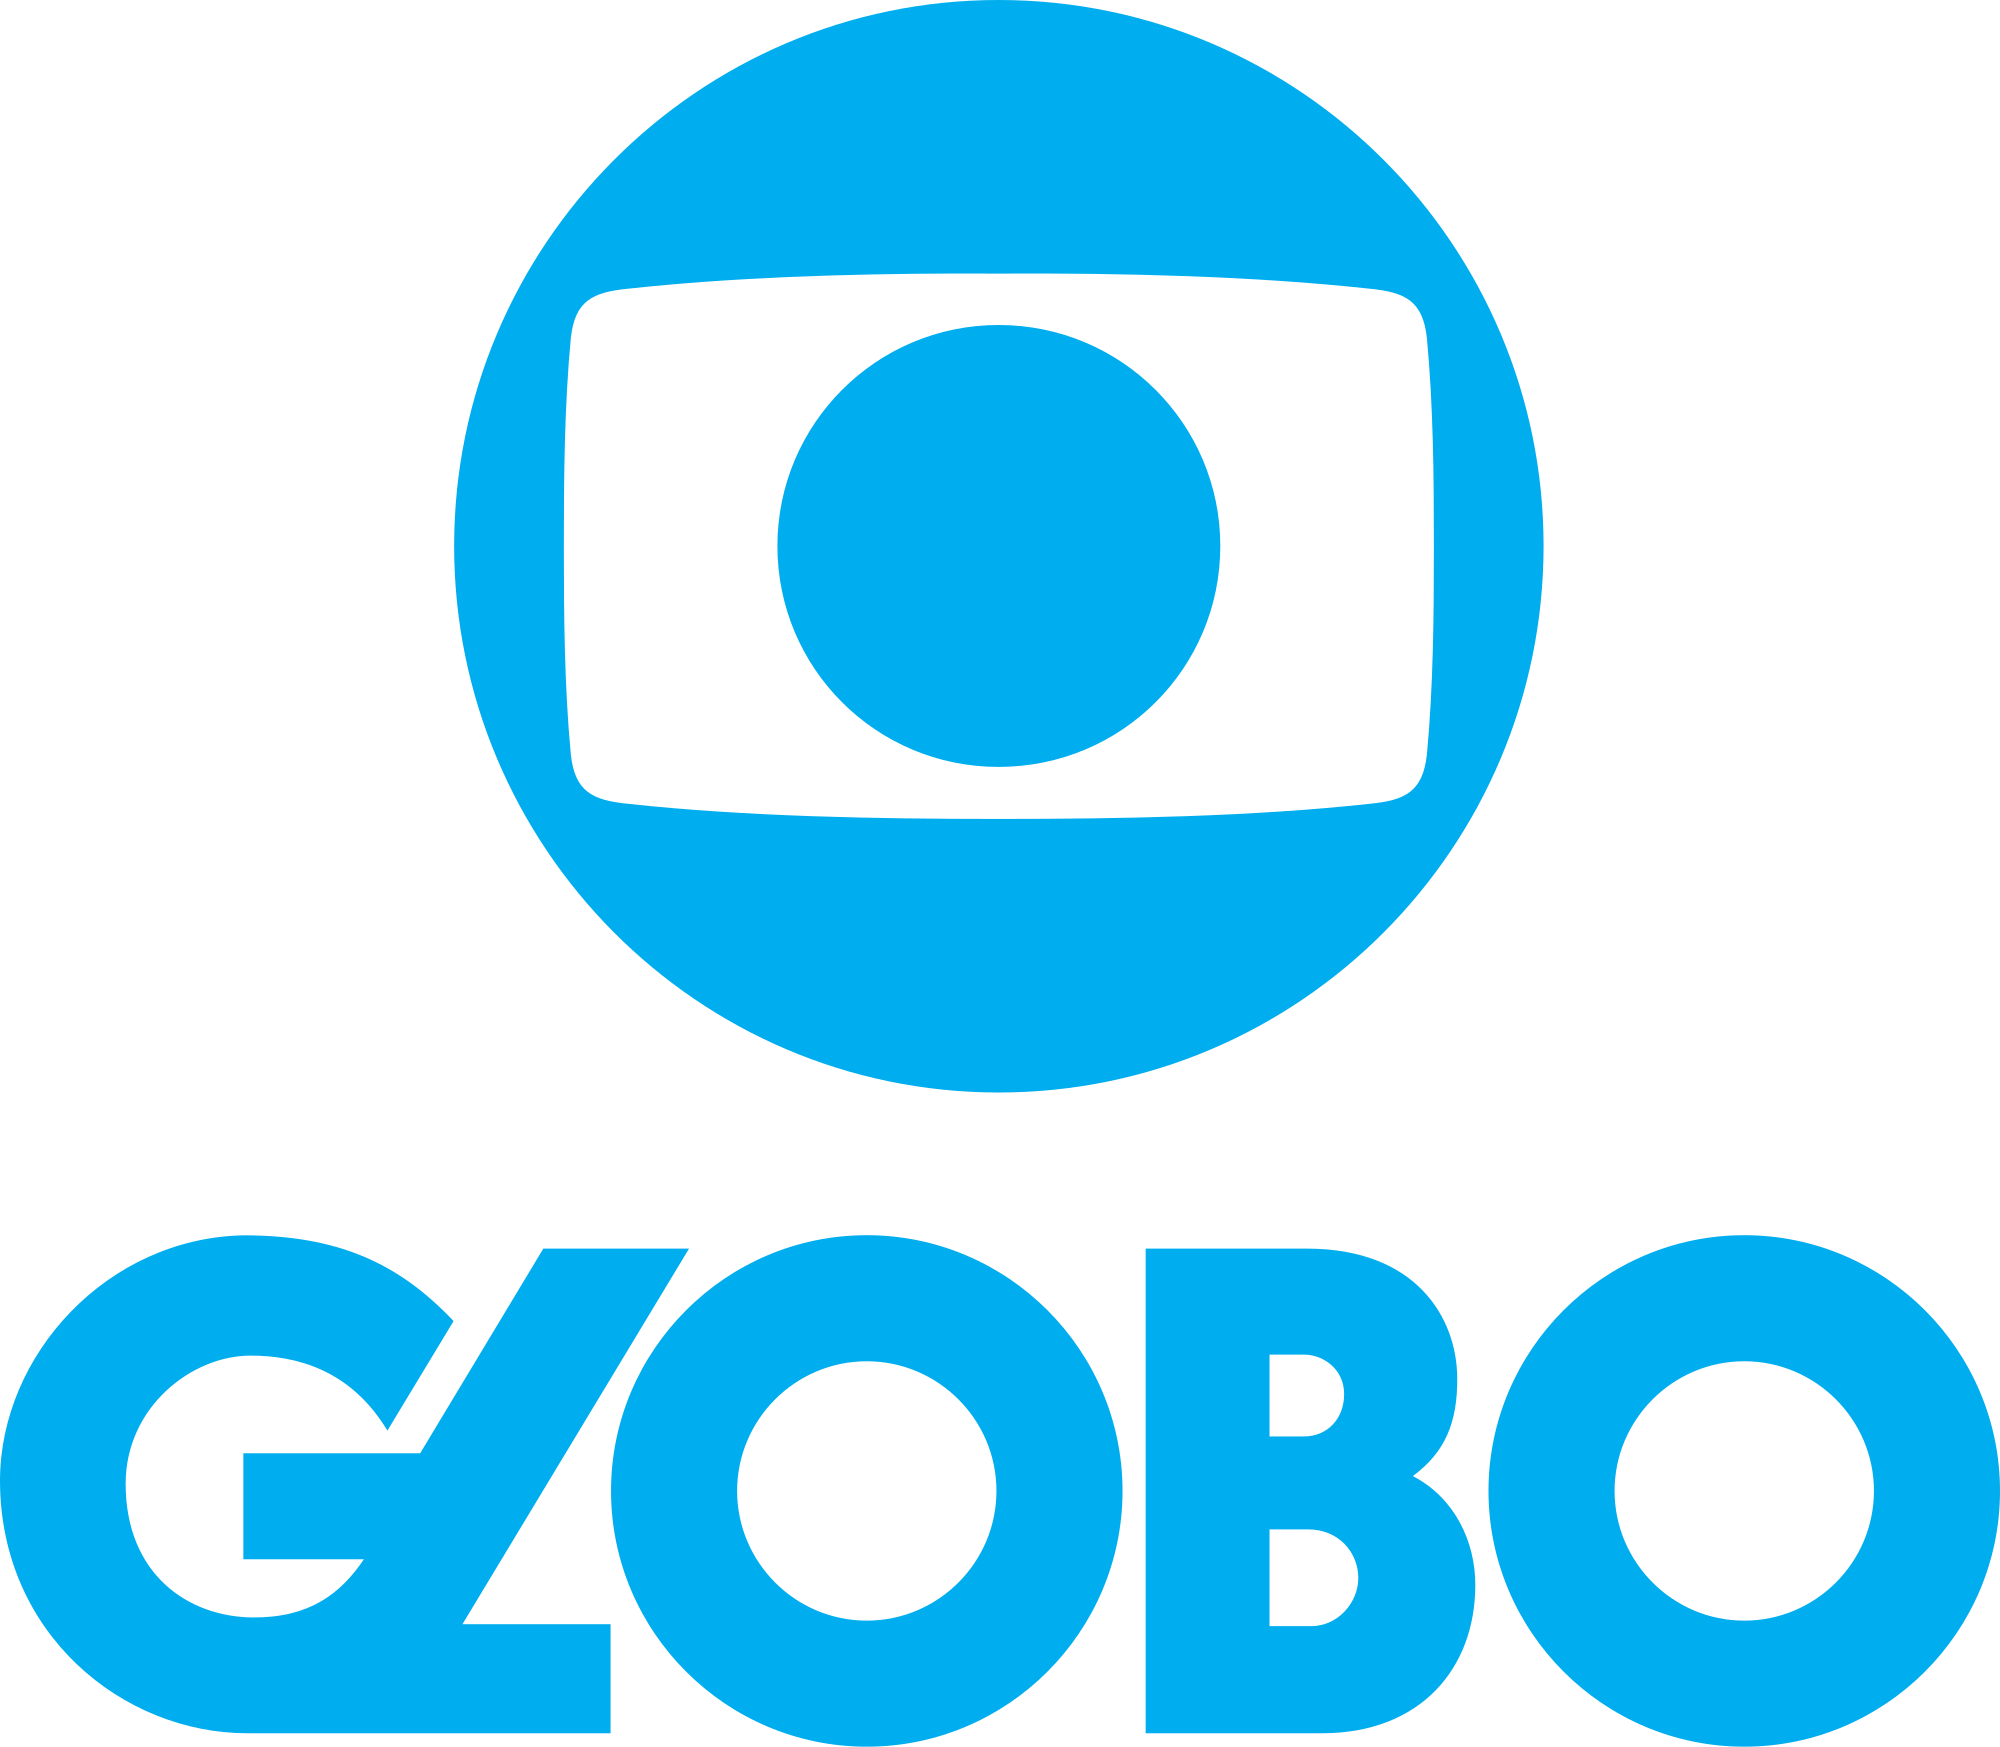 Globo logo and wordmark.png?ixlib=rails 2.1